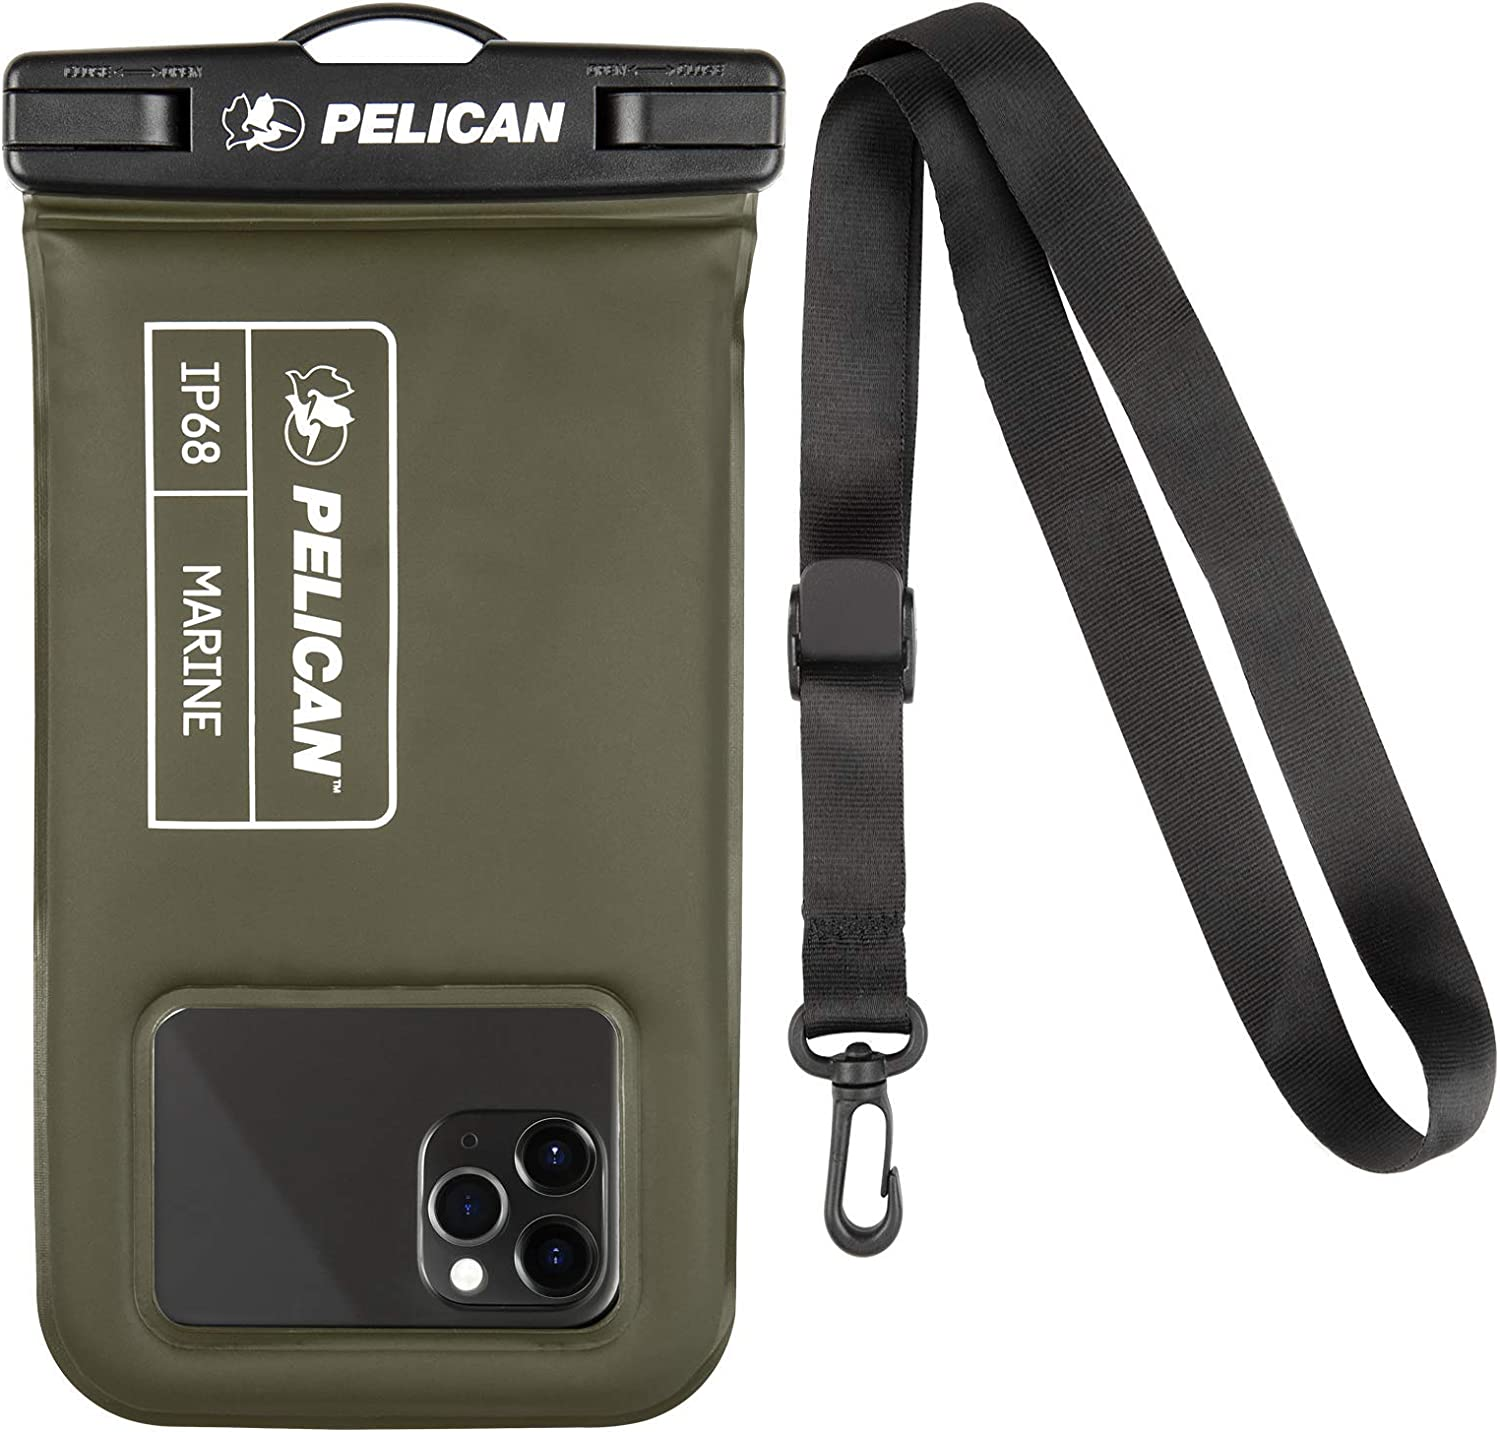 Case-Mate Pelican - Marine Series Waterproof Floating Pouch - Universal Compatibility - Olive Green (PP043304)